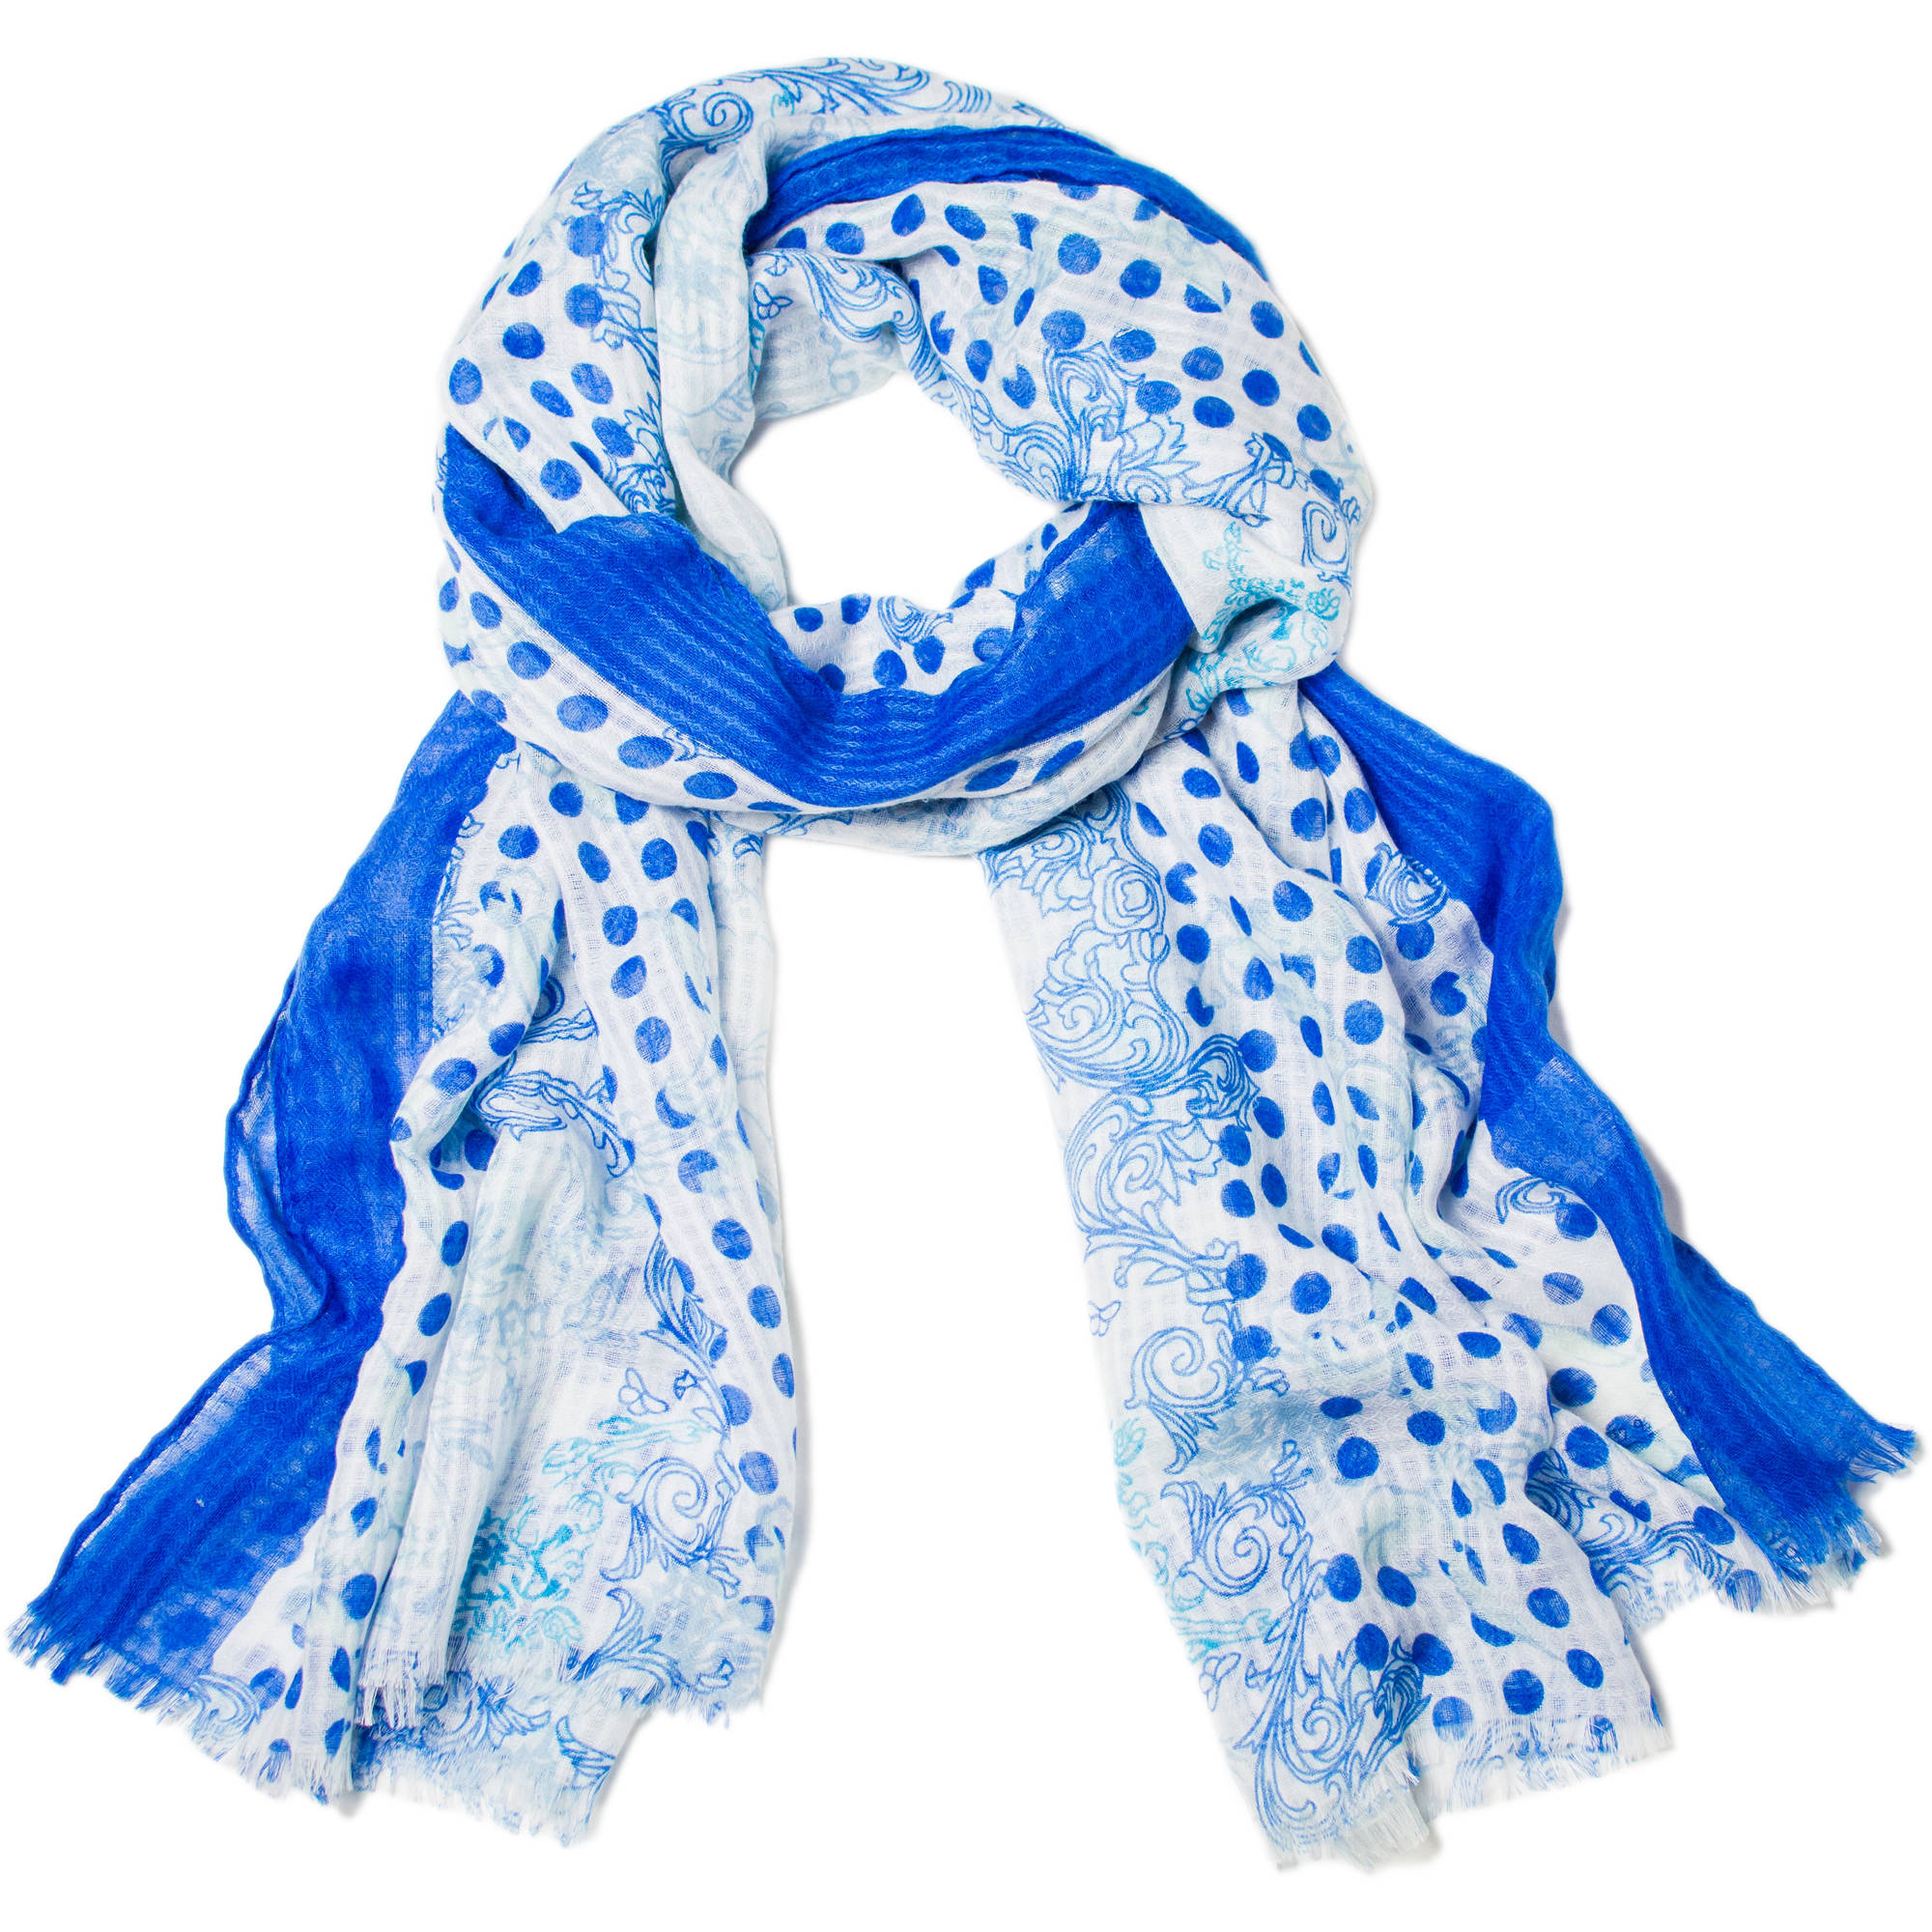 Women's Faded Glory Mixed Print Oblong Scarf